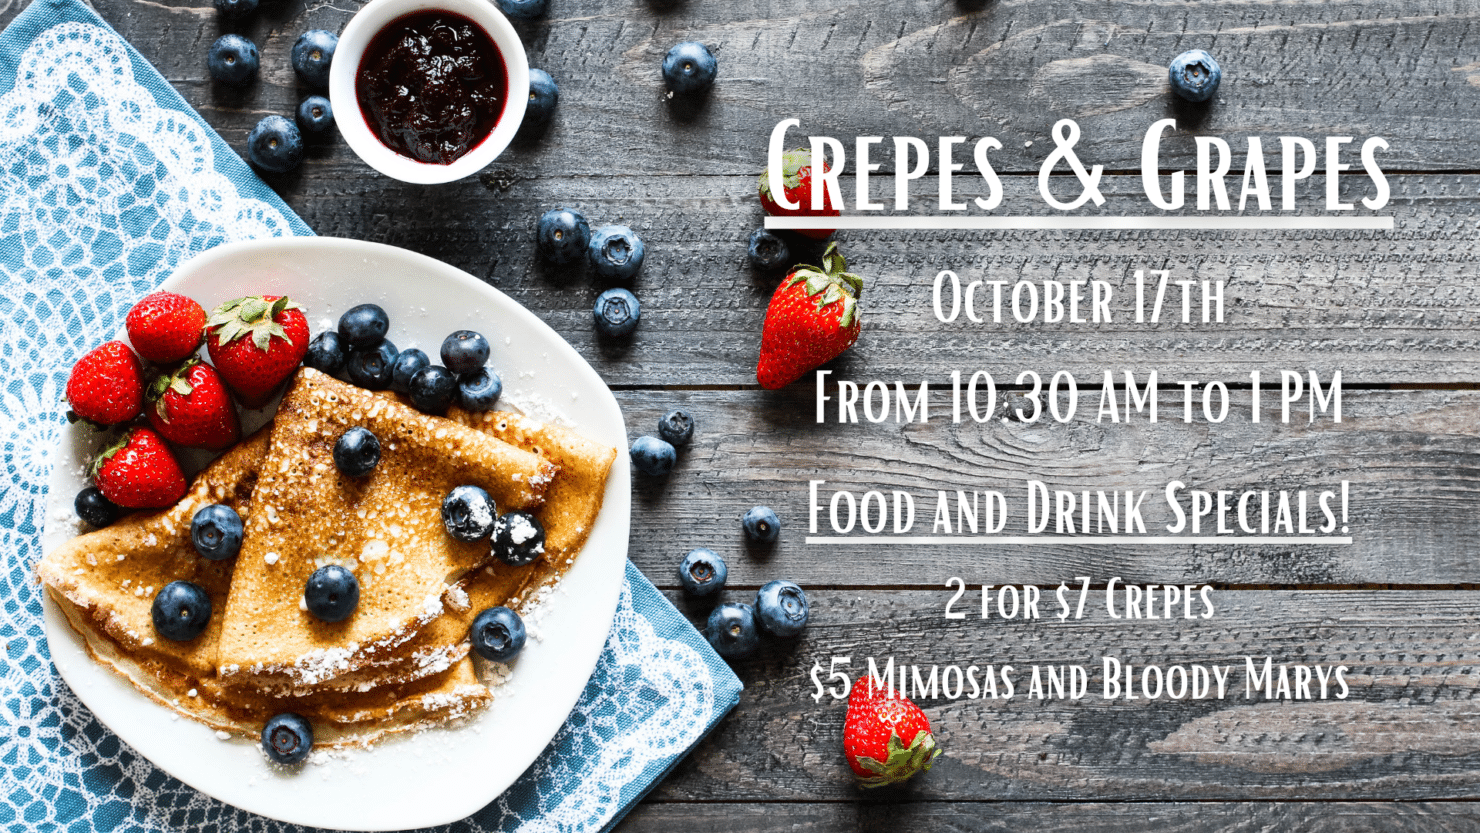 Crepes & Grapes Brunch at Timber Hill Winery